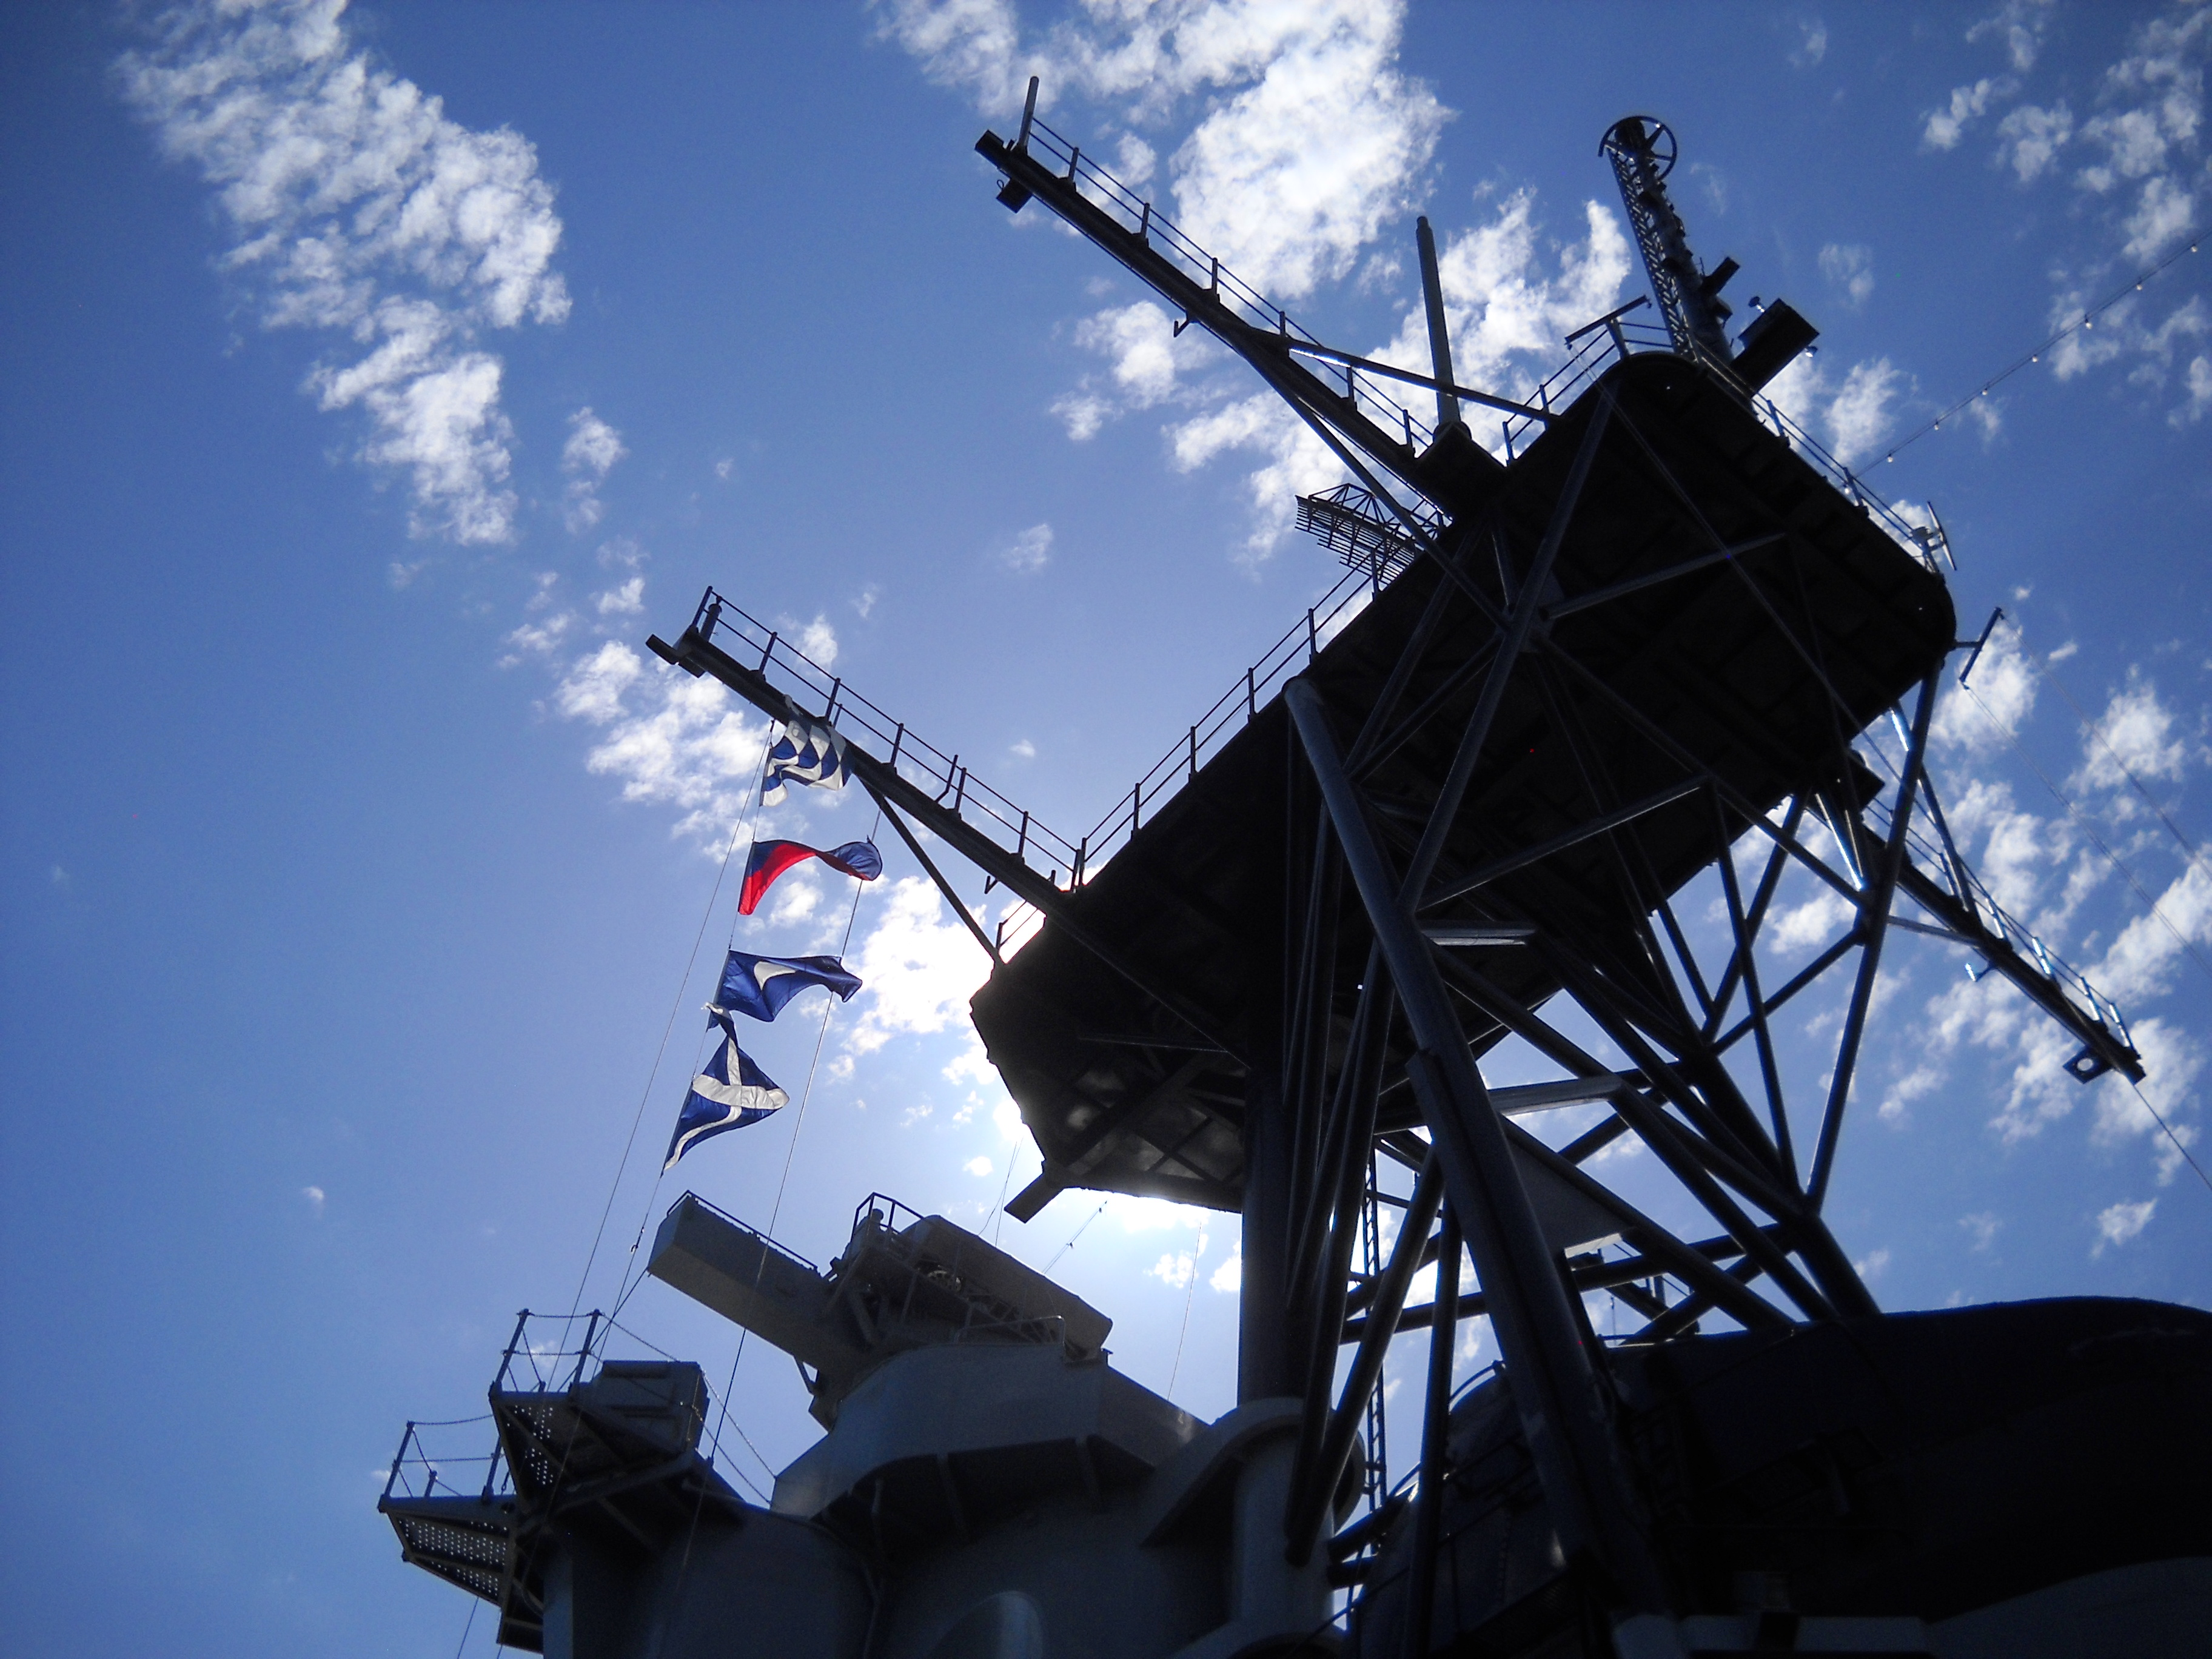 Looking Up at the USS Iowa